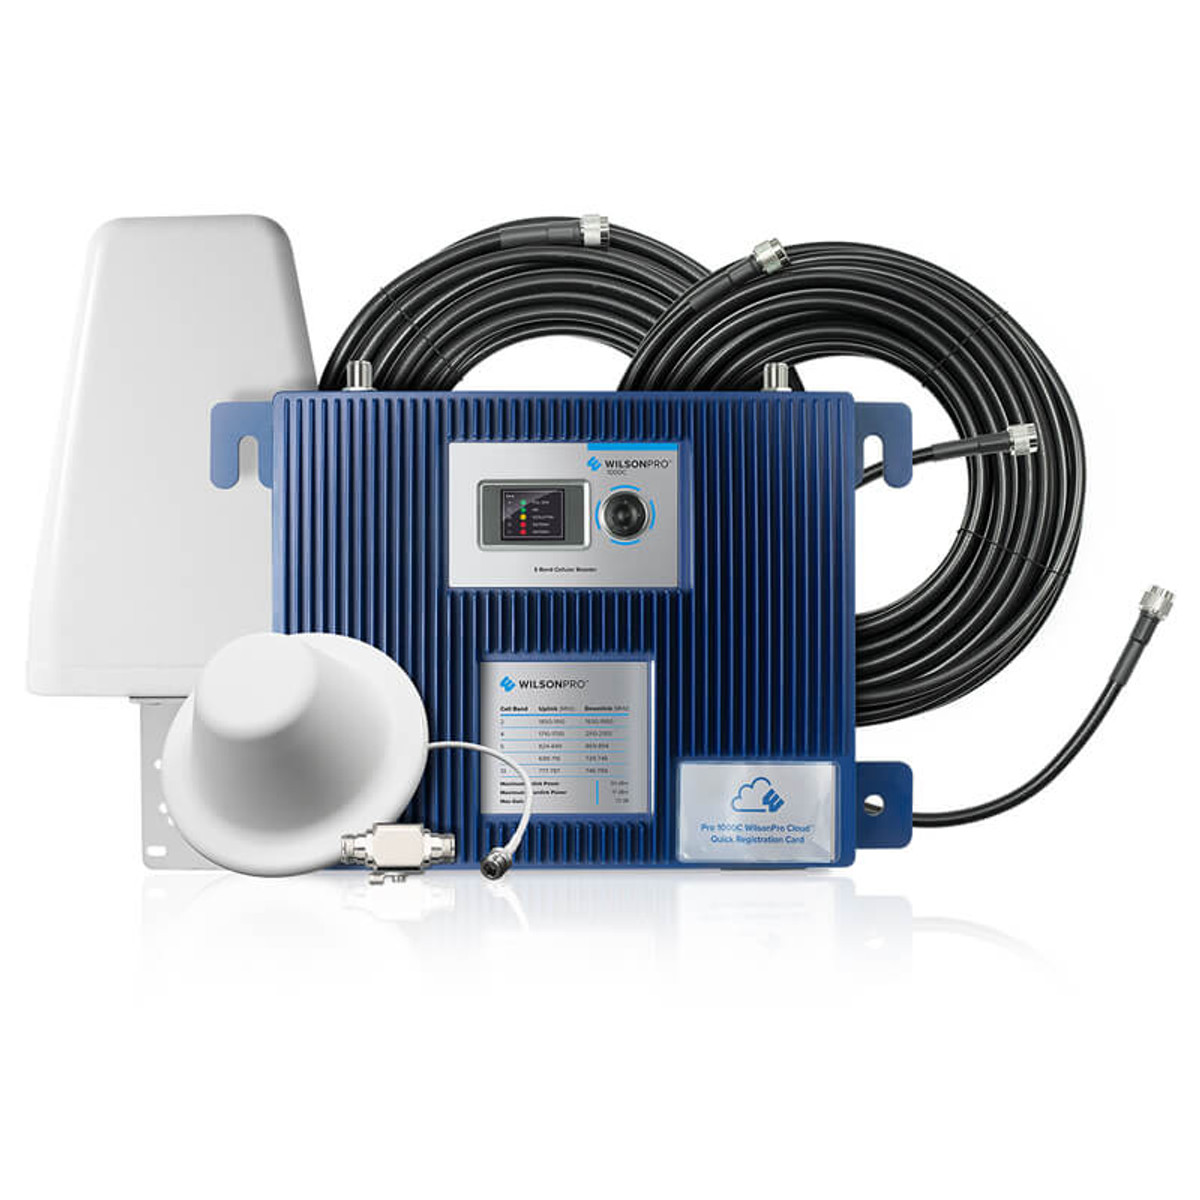 Wilson Pro 1000C Commercial Signal Booster Kit   460242